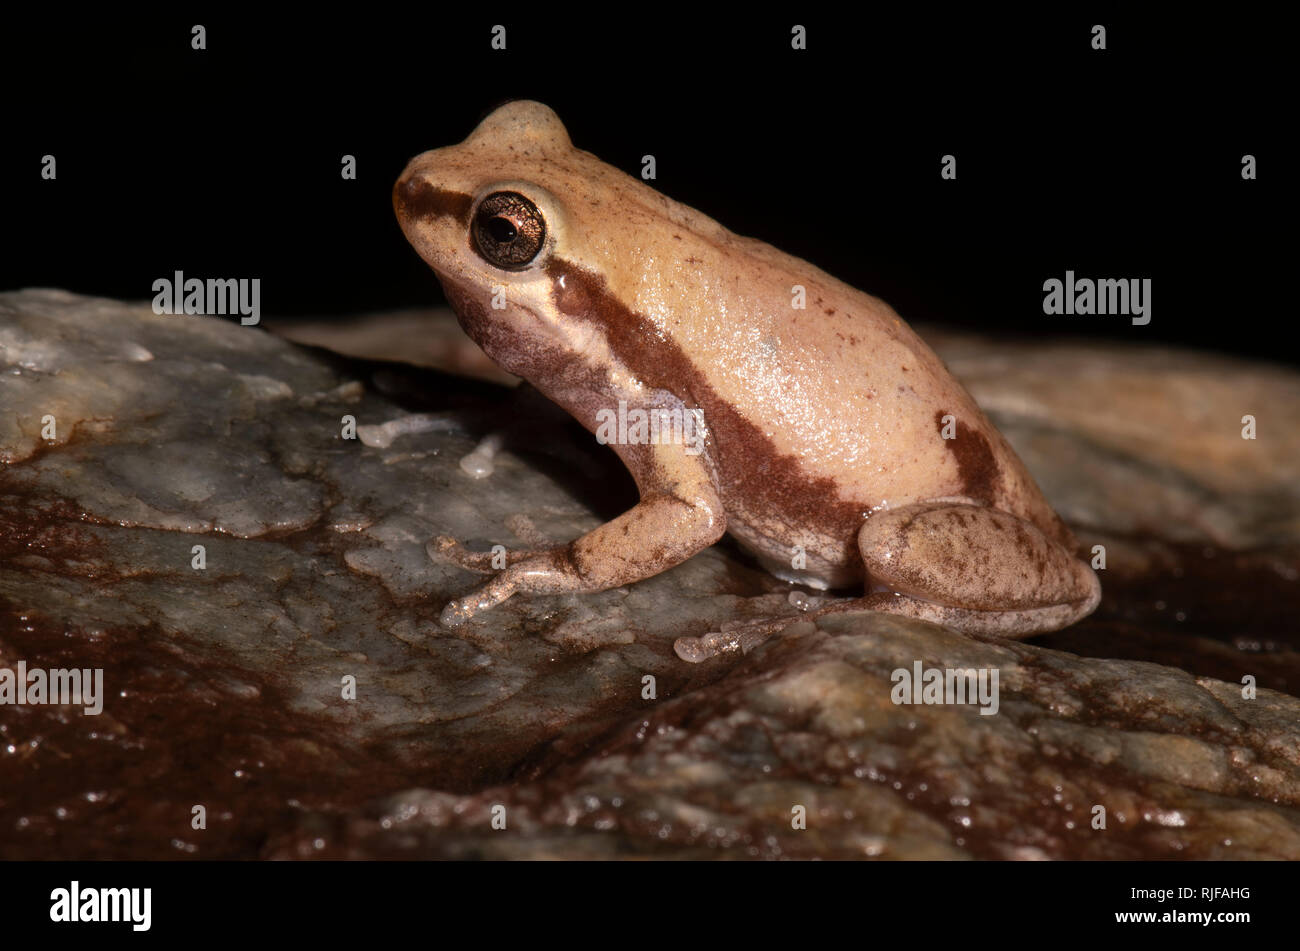 Sideways view of a Desert Tree Frog (Litoria rubella), Cairns, Far North Queensland, FNQ, QLD, Australia - Stock Image